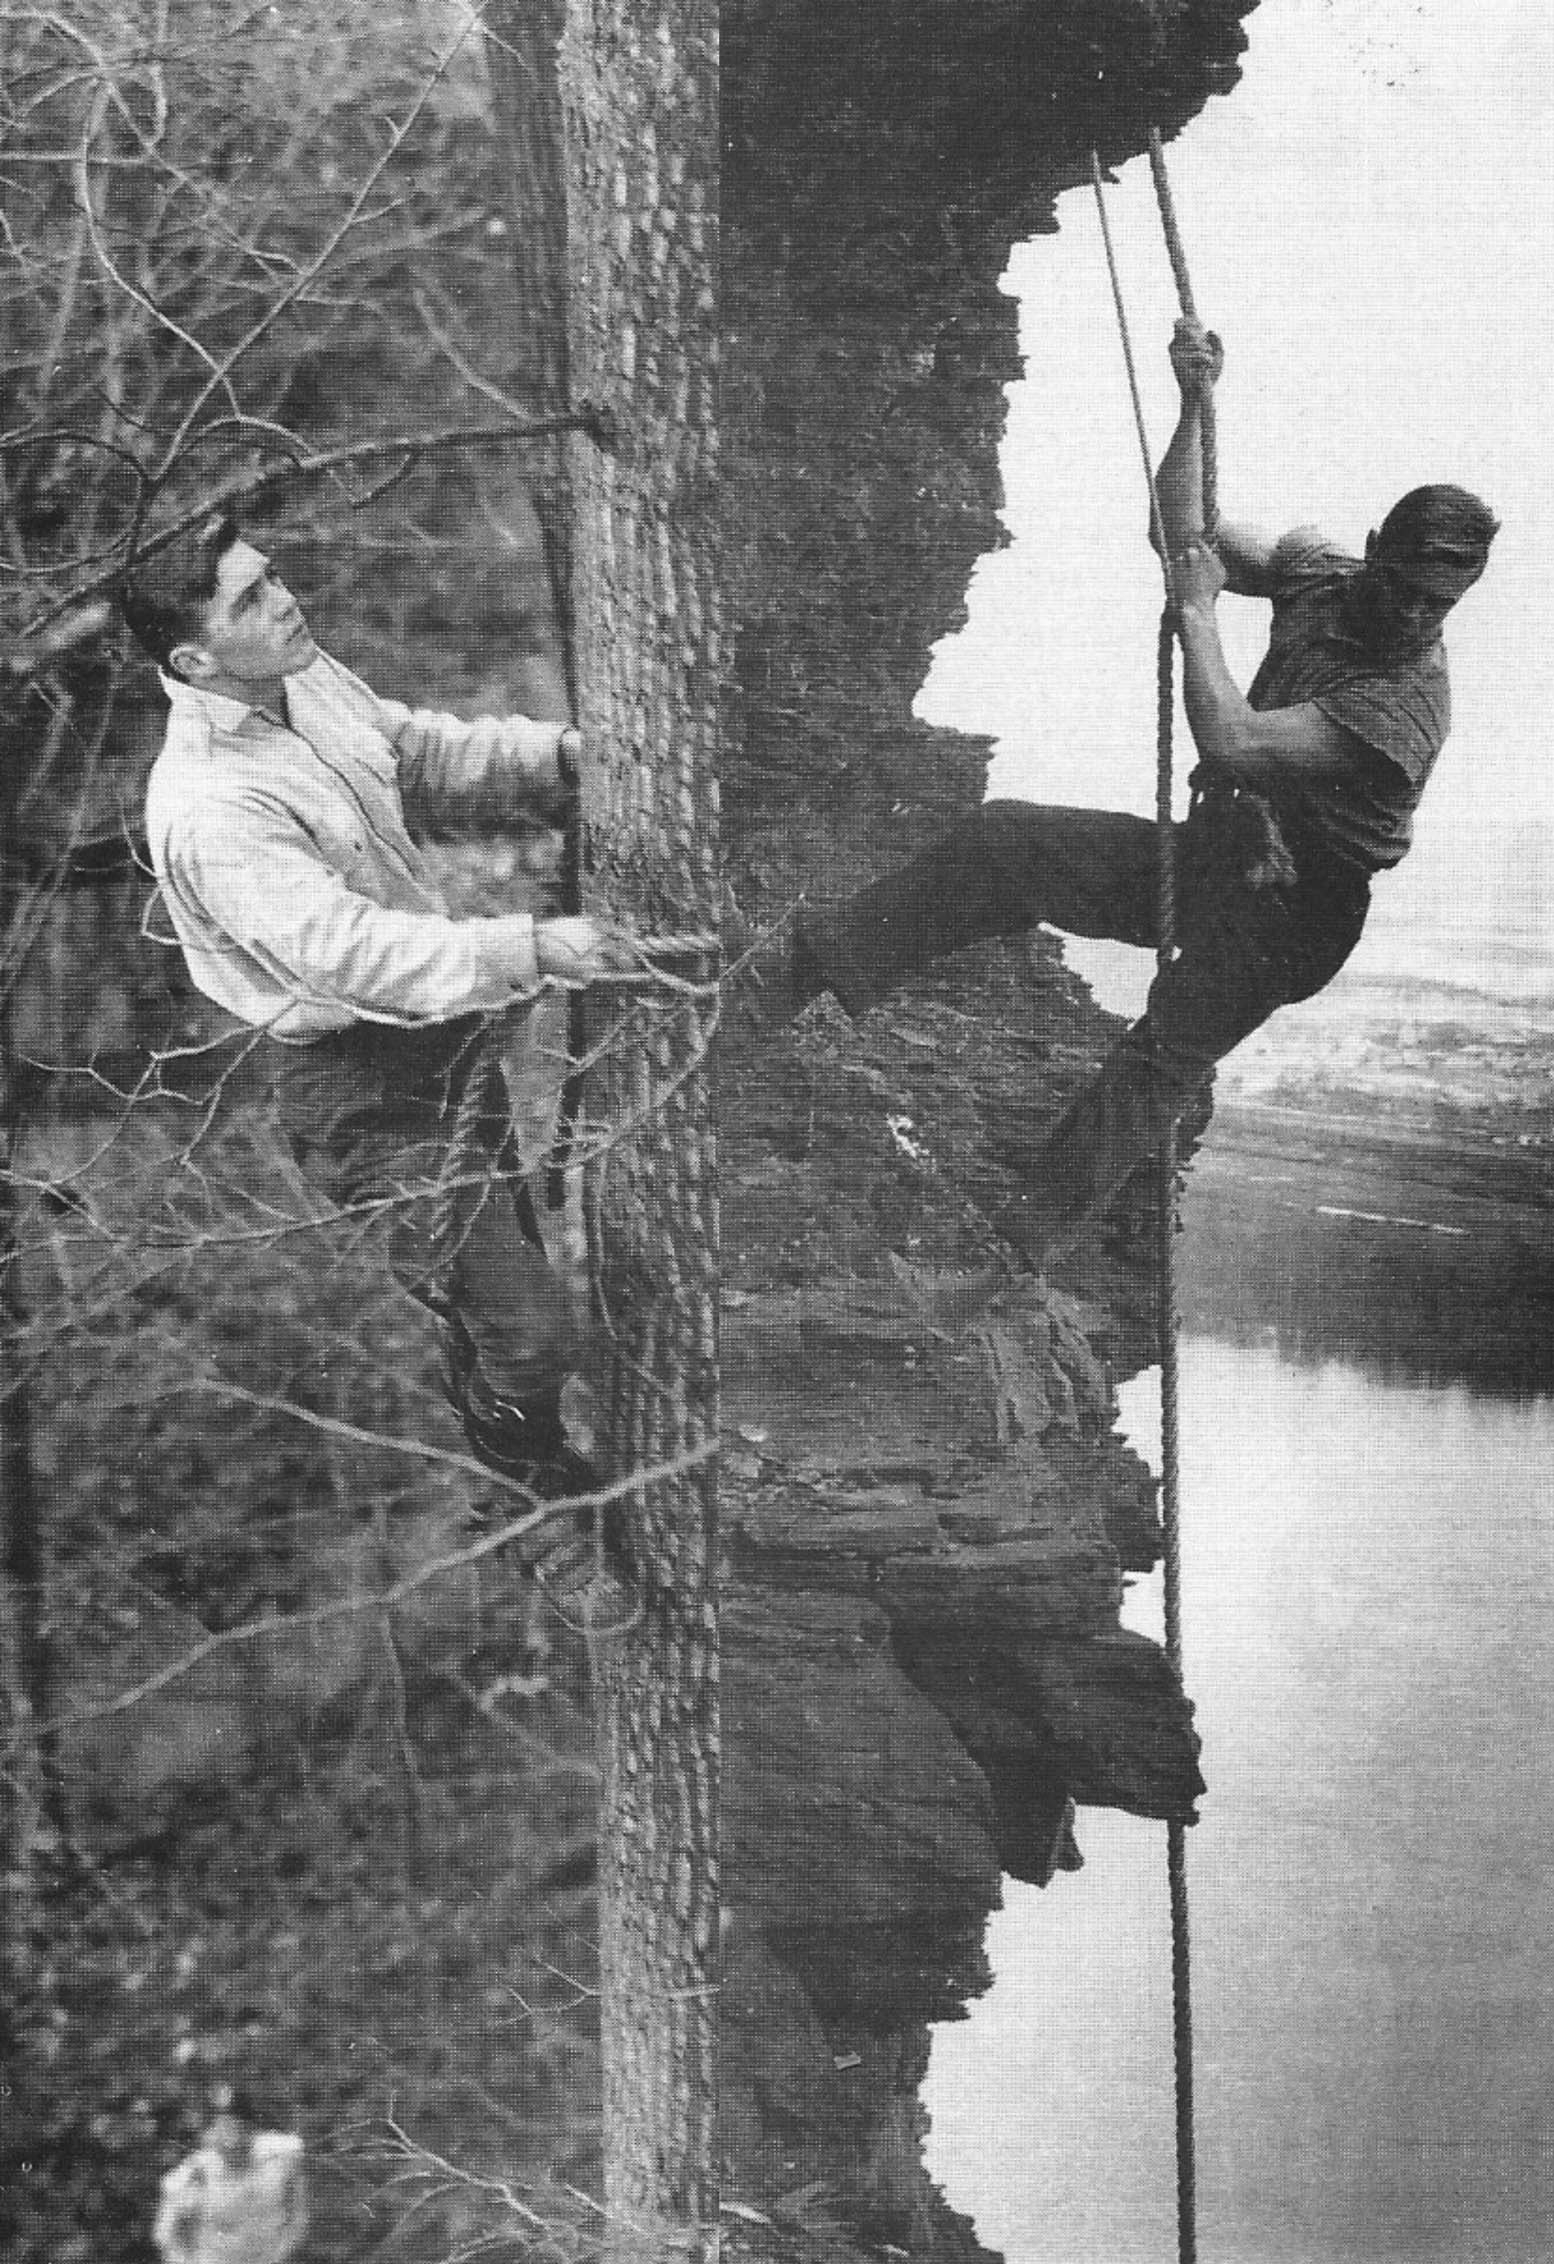 Wildlife pioneers Frank and John Craighead, who were identical twins, climbed tall trees and rappelled down steep cliffs to photograph raptors in their nests.